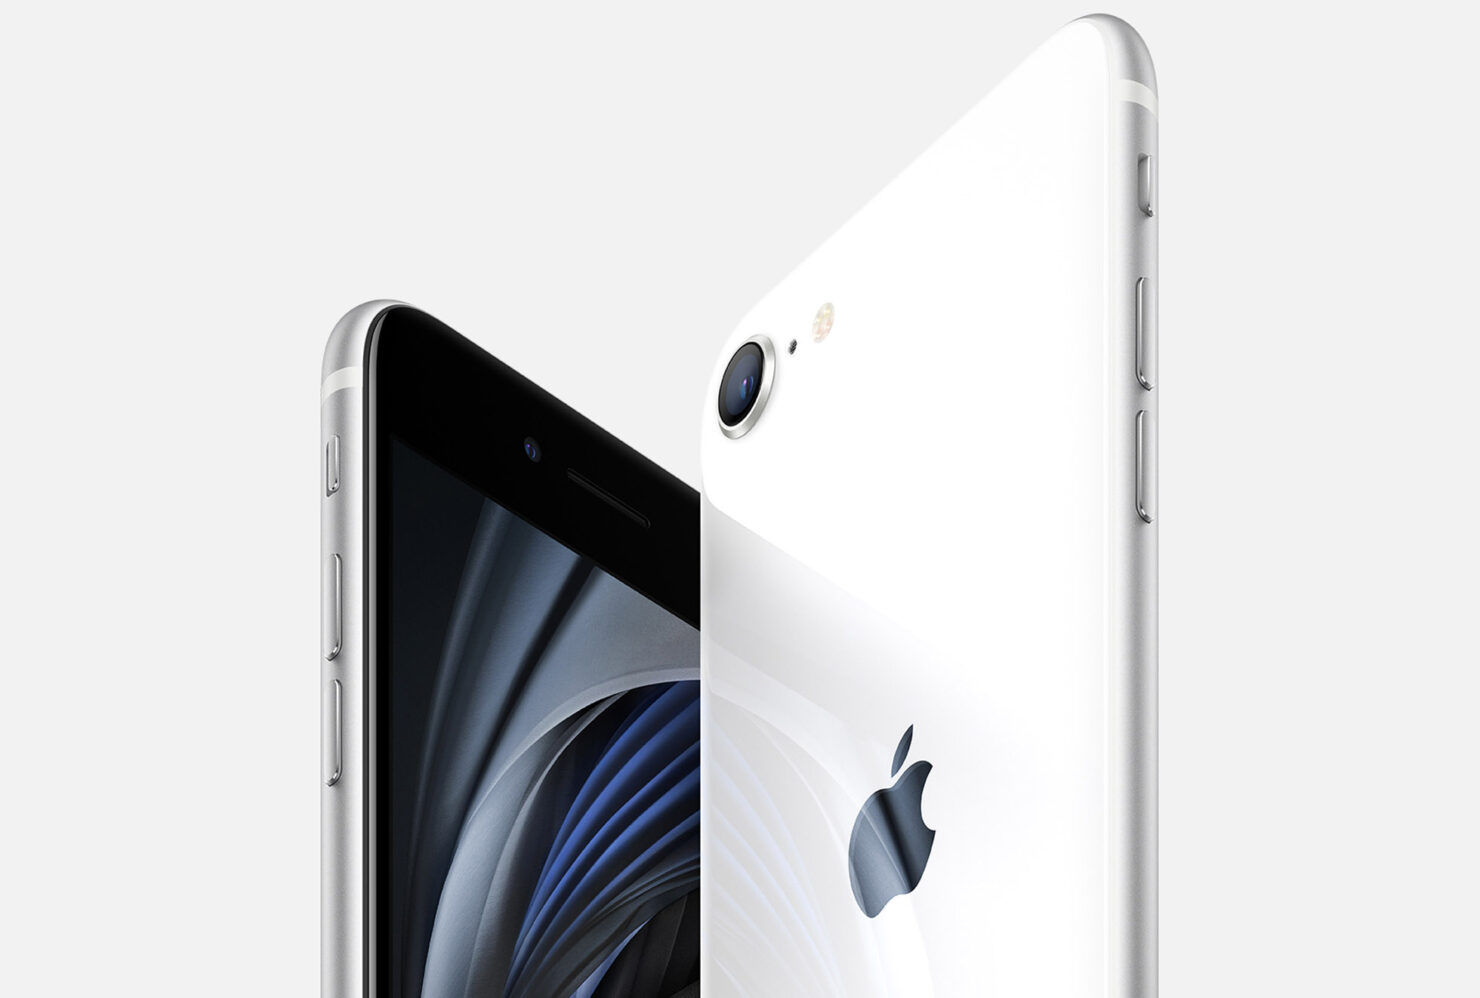 2021 iPhone SE Might Retain the Same A13 Bionic SoC as 2020 Model